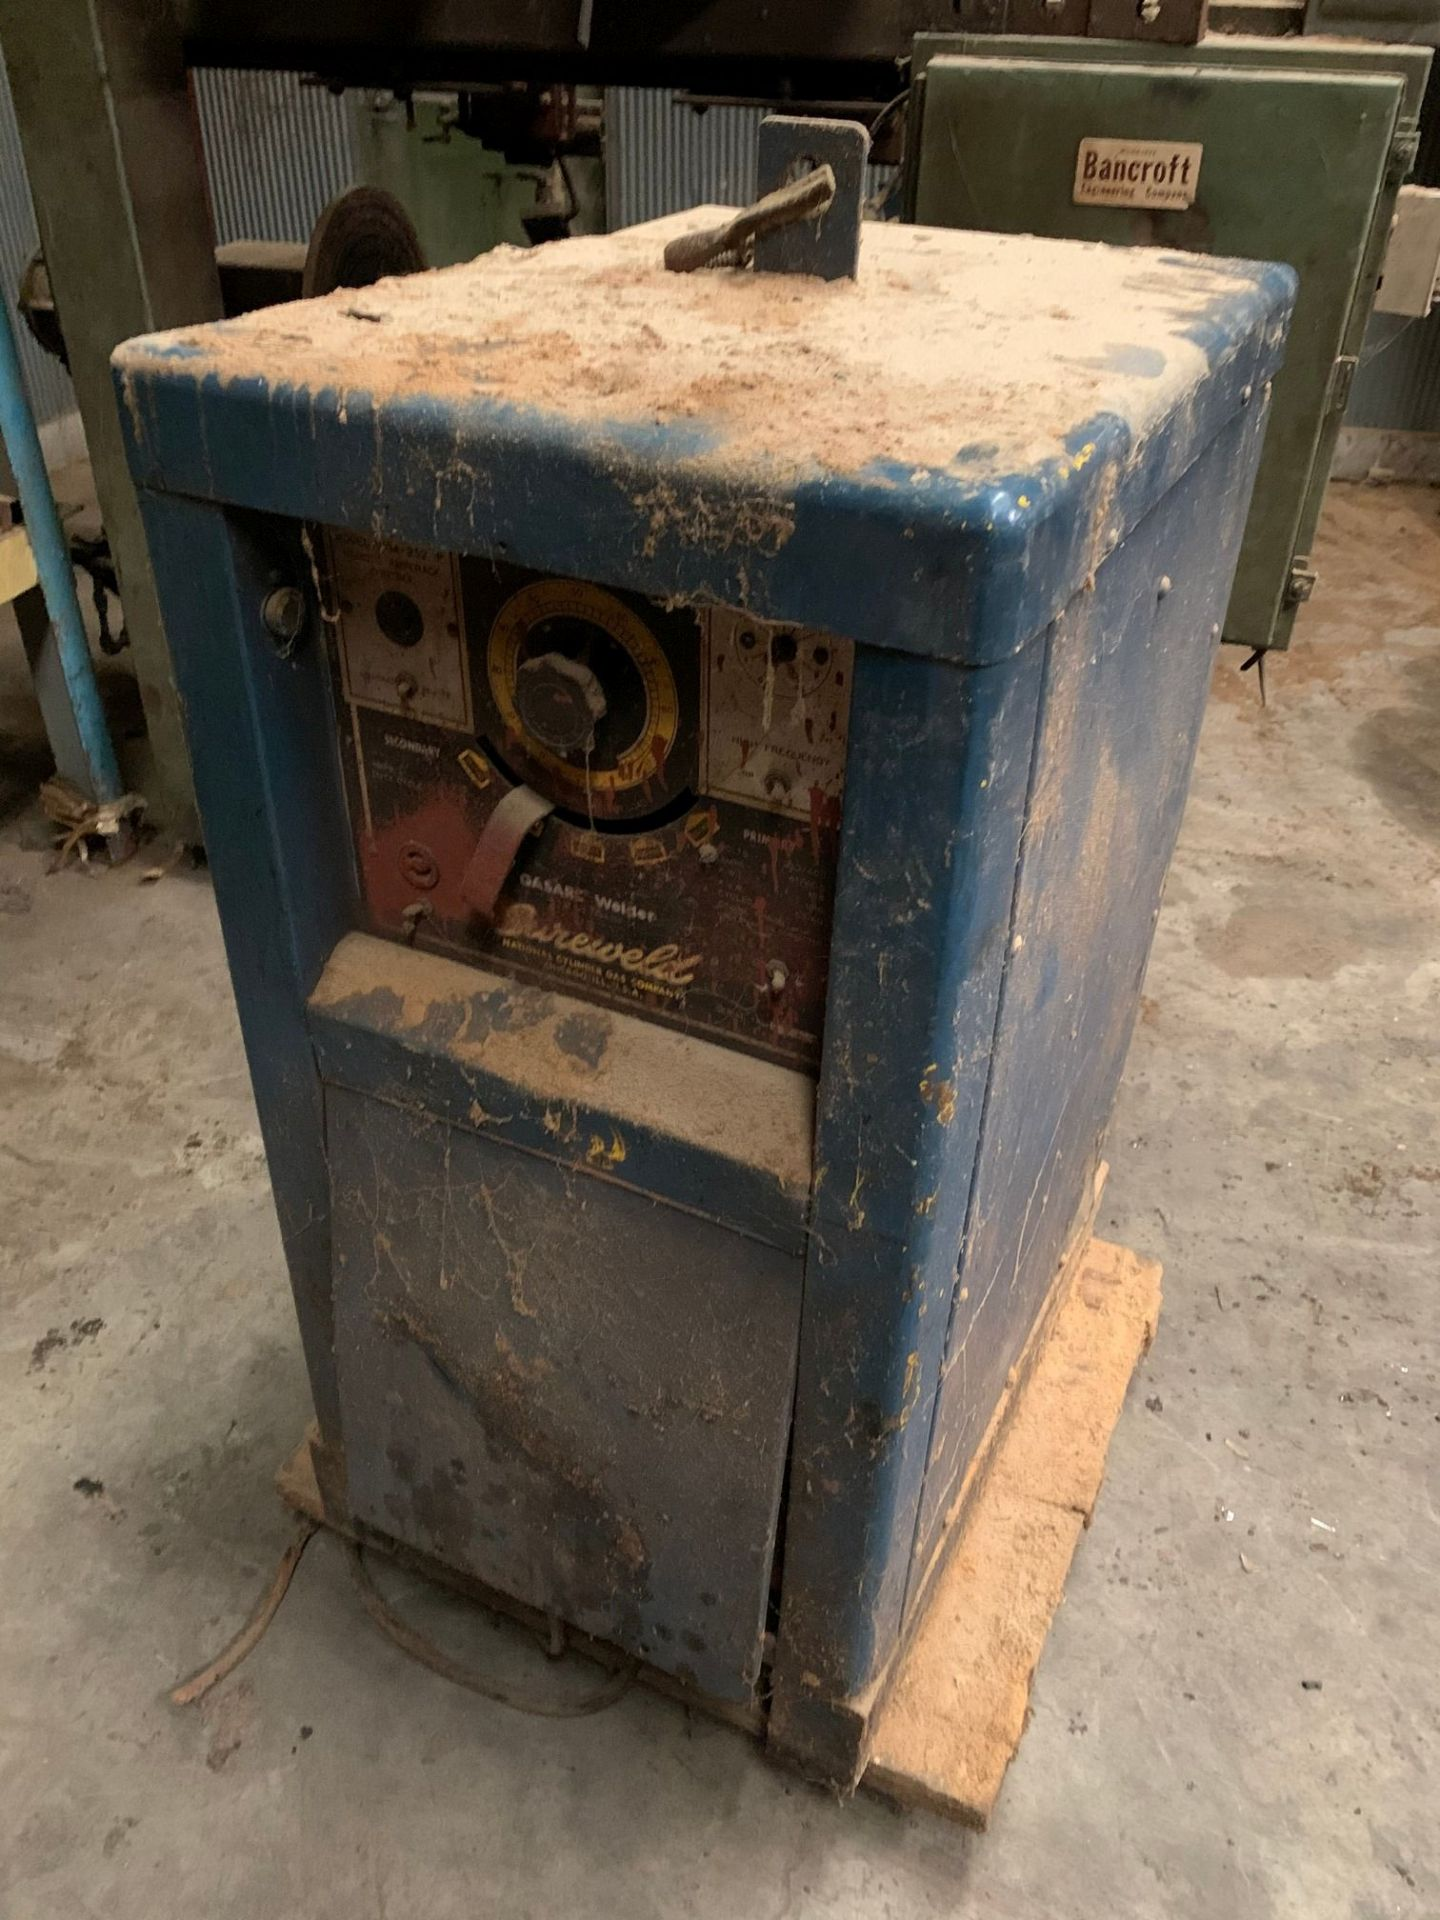 BANCROFT TANK HEAD WELDER WITH MILLER POWER SUPPLY - Image 3 of 3